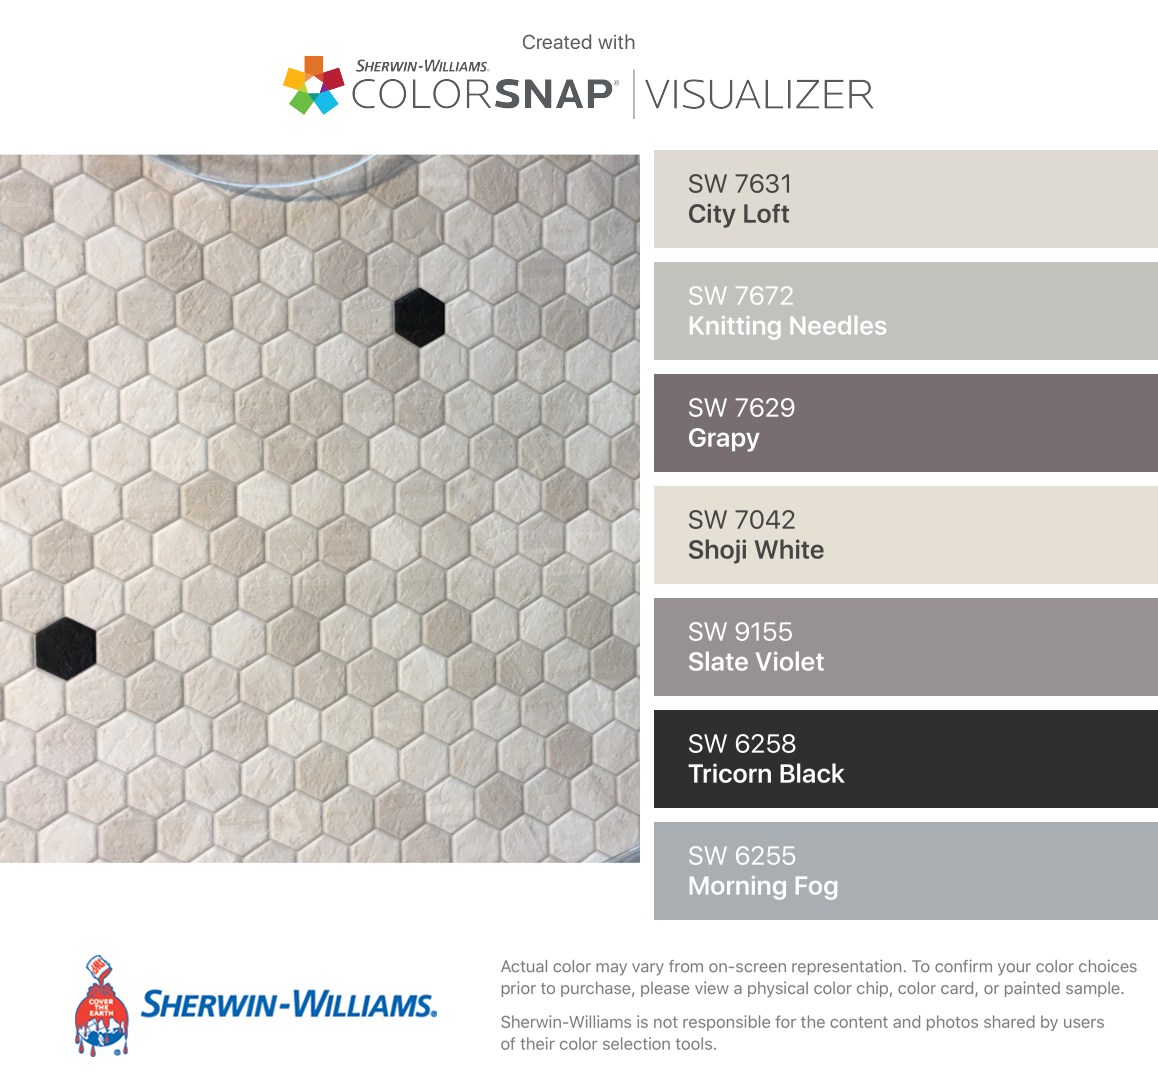 I found these colors with ColorSnap® Visualizer for iPhone by Sherwin-Williams: City Loft (SW 7631), Knitting Needles (SW 7672), Grapy (SW 7629), Shoji White (SW 7042), Slate Violet (SW 9155), Tricorn Black (SW 6258), Morning Fog (SW 6255). #cityloftsherwinwilliams I found these colors with ColorSnap® Visualizer for iPhone by Sherwin-Williams: City Loft (SW 7631), Knitting Needles (SW 7672), Grapy (SW 7629), Shoji White (SW 7042), Slate Violet (SW 9155), Tricorn Black (SW 6258), Morning Fog (S #cityloftsherwinwilliams